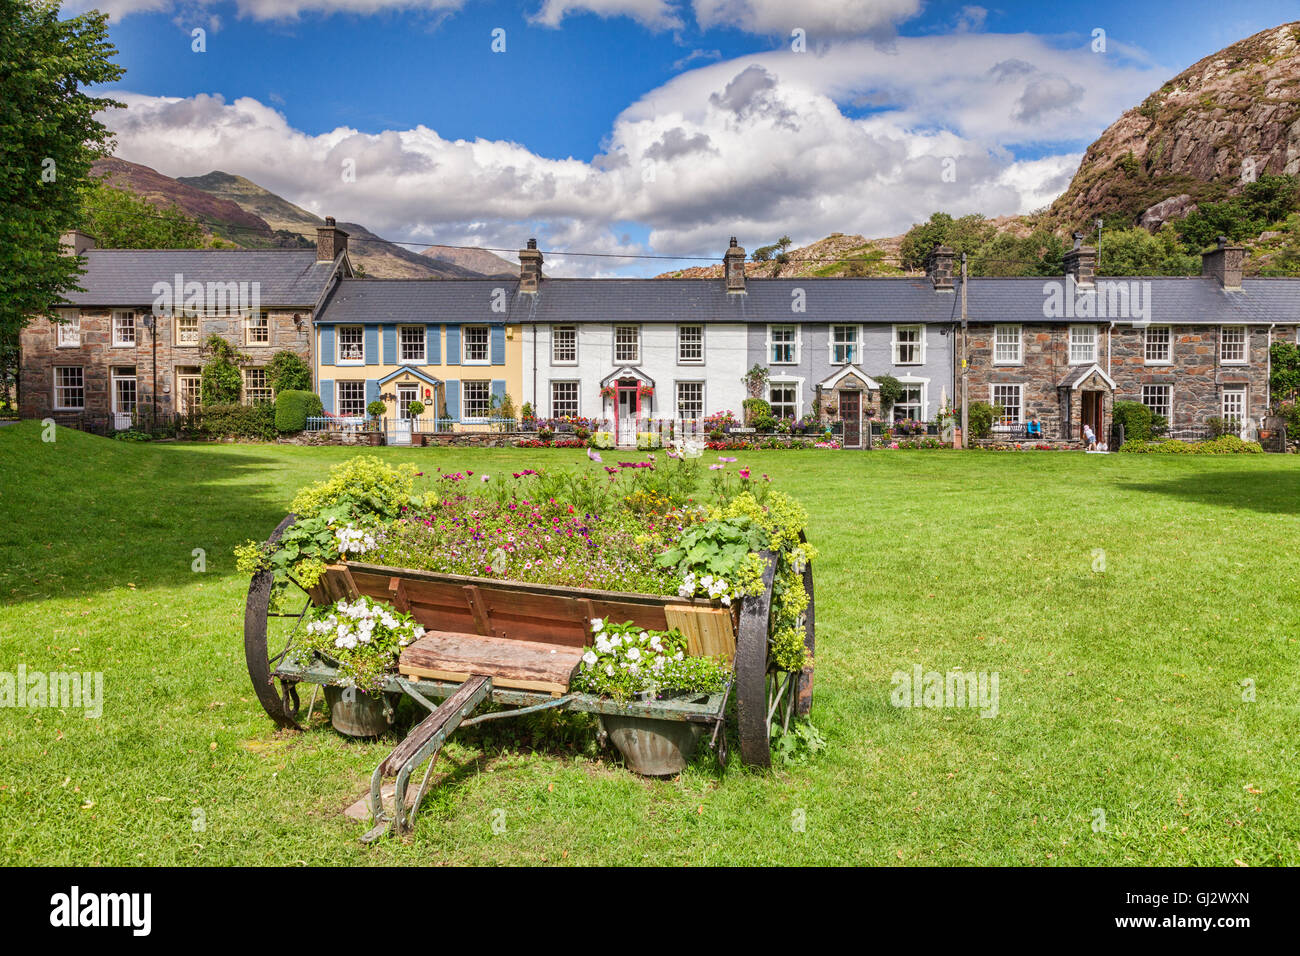 A row of cottages on a village green, Beddgelert, Snowdonia National Park, Gwynedd, Wales, UK - Stock Image